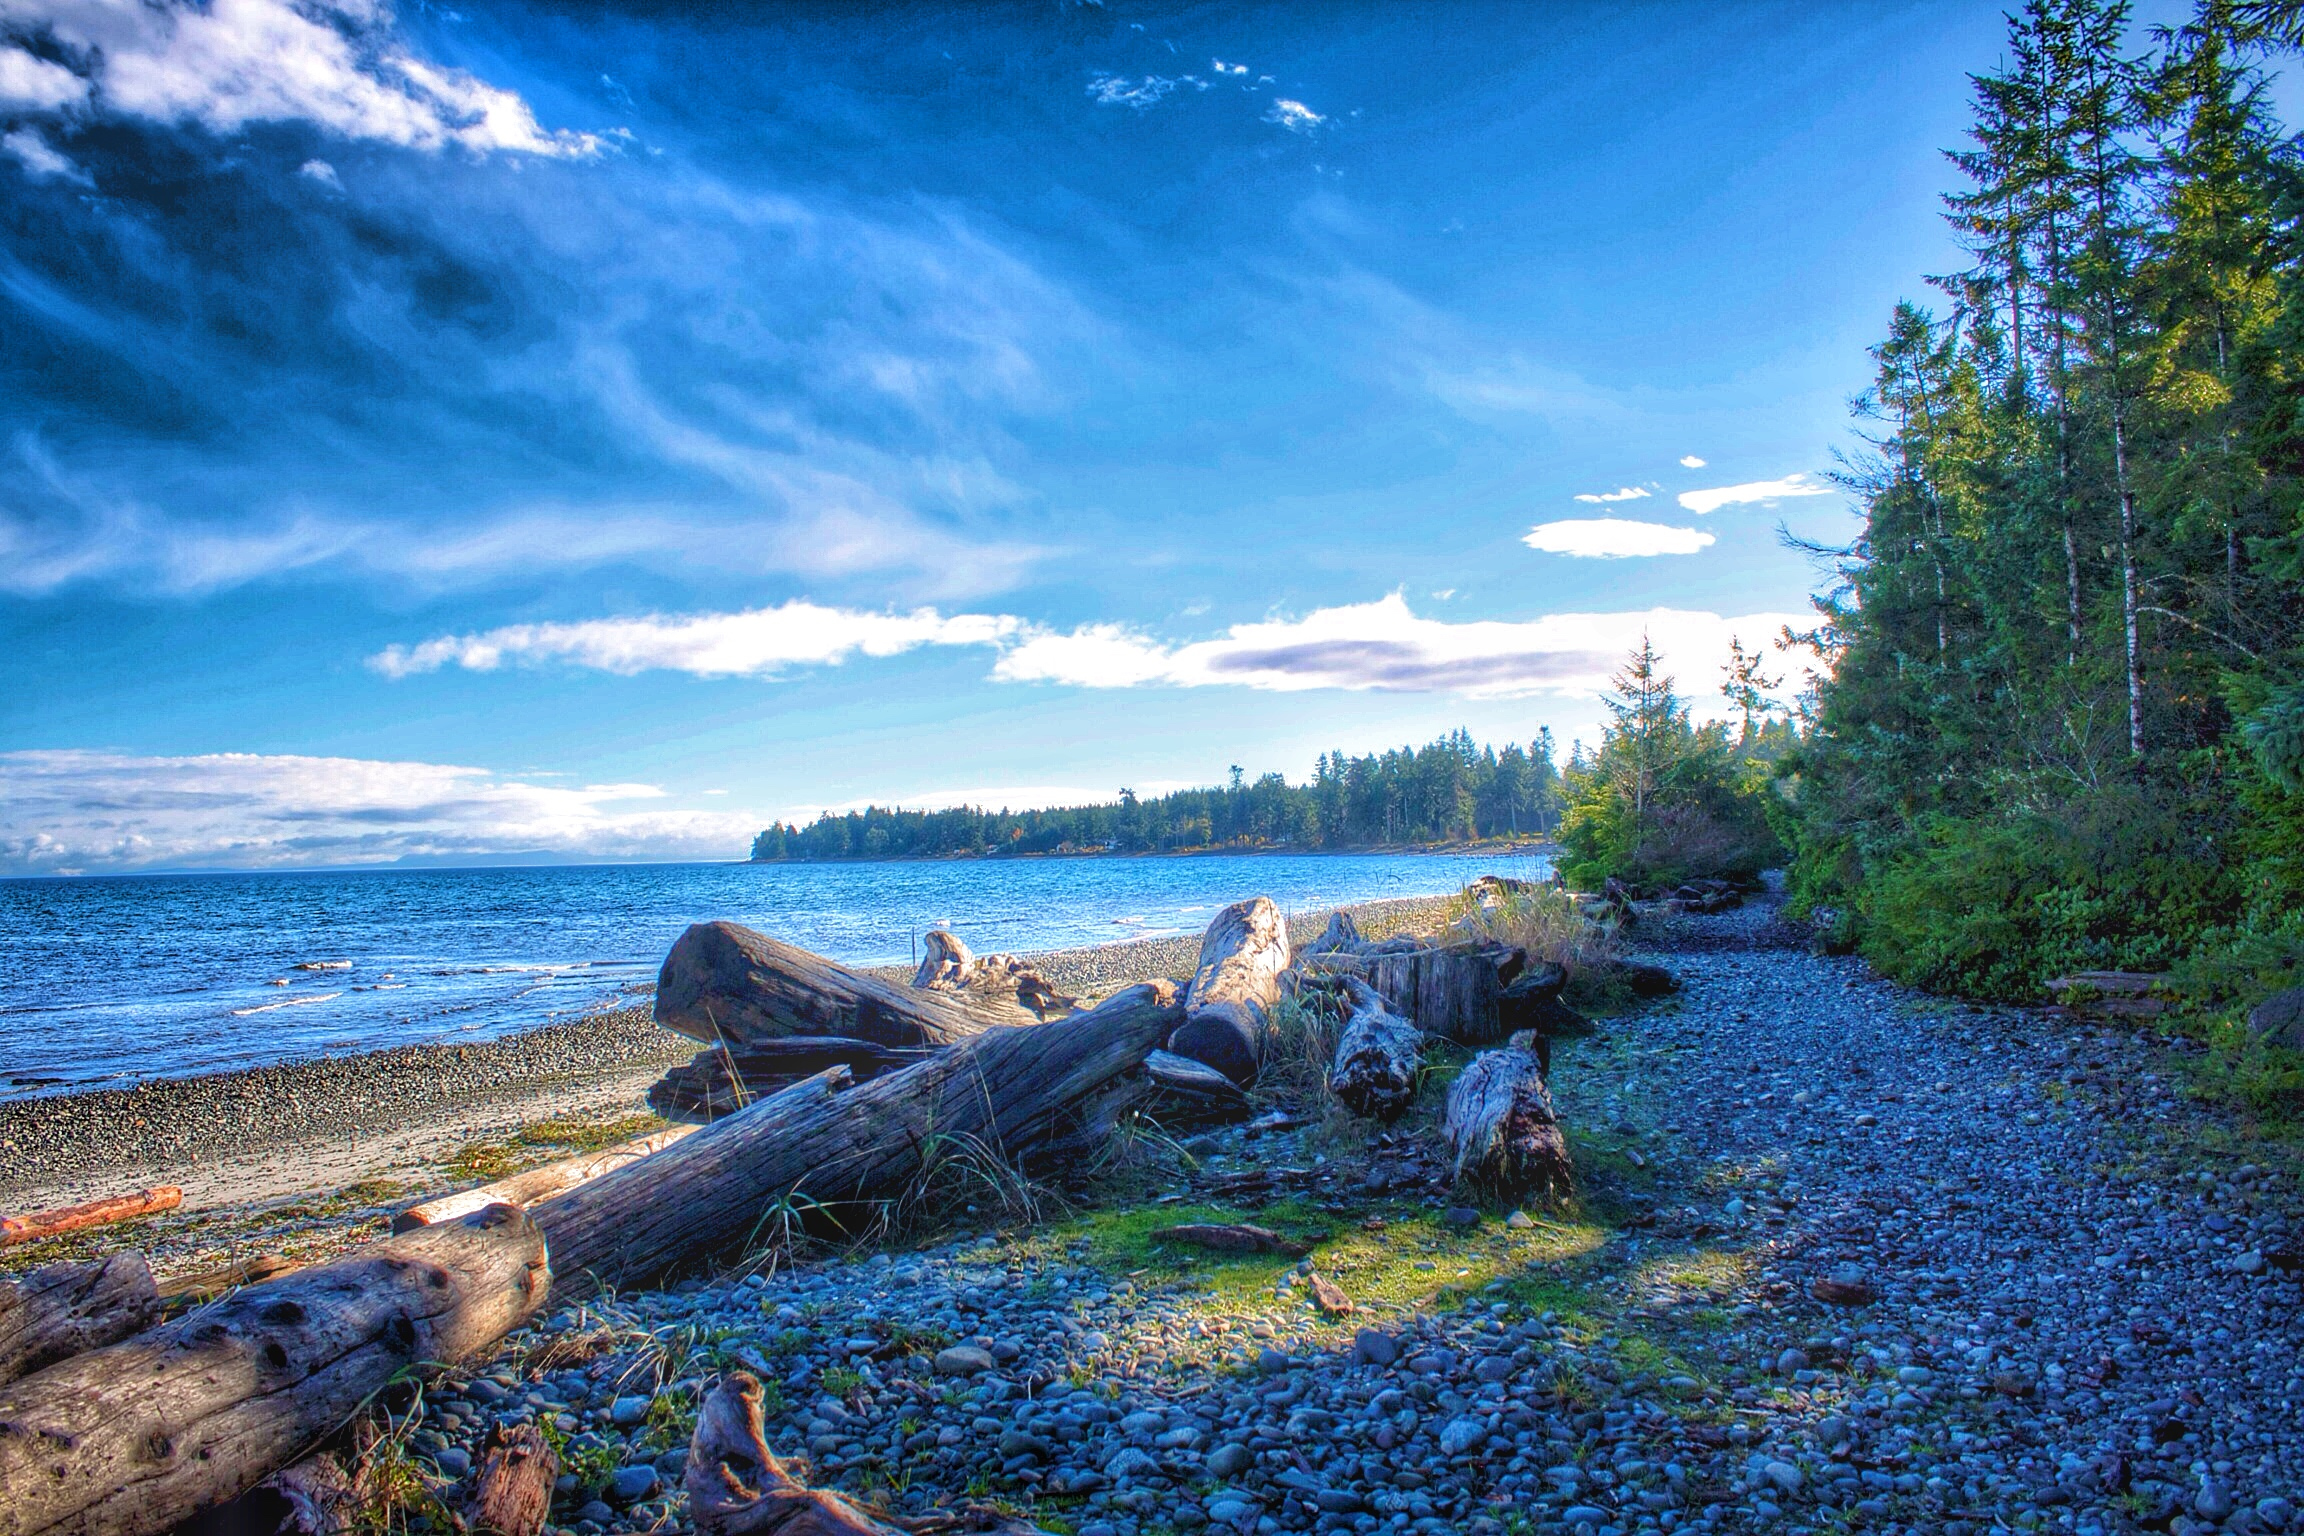 Afternoon at a Beach in Northern Vancouver Island